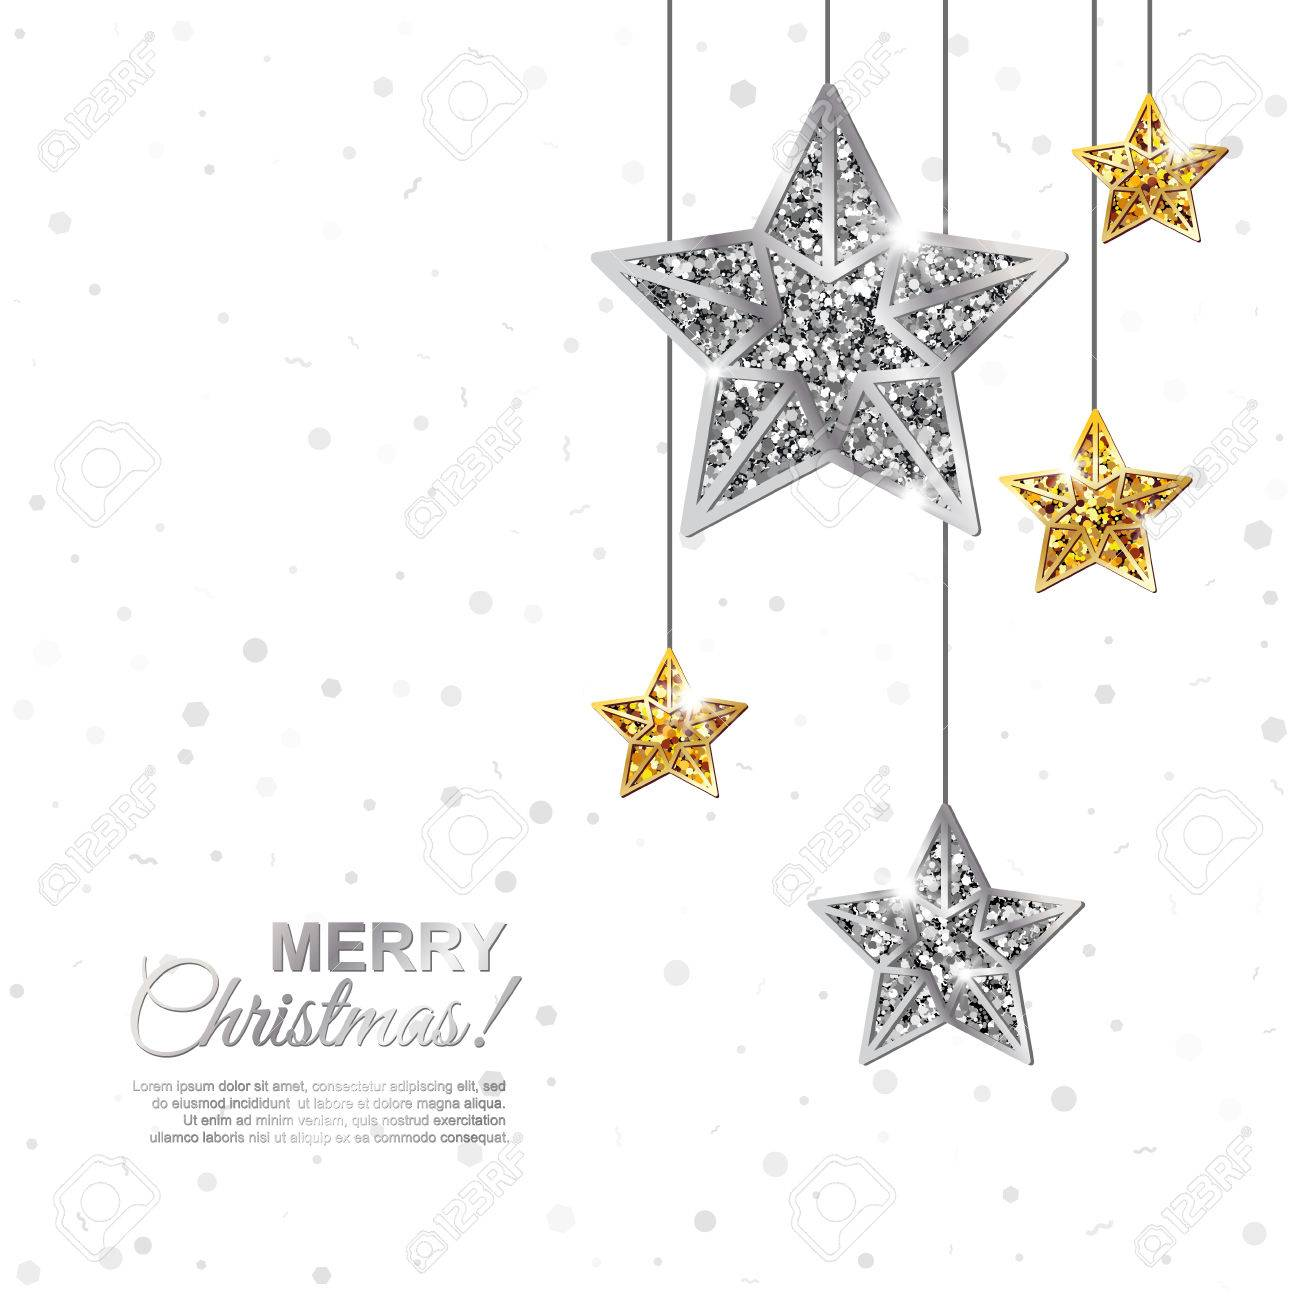 merry christmas and happy new year glowing banner glitter white background with hanging gold and